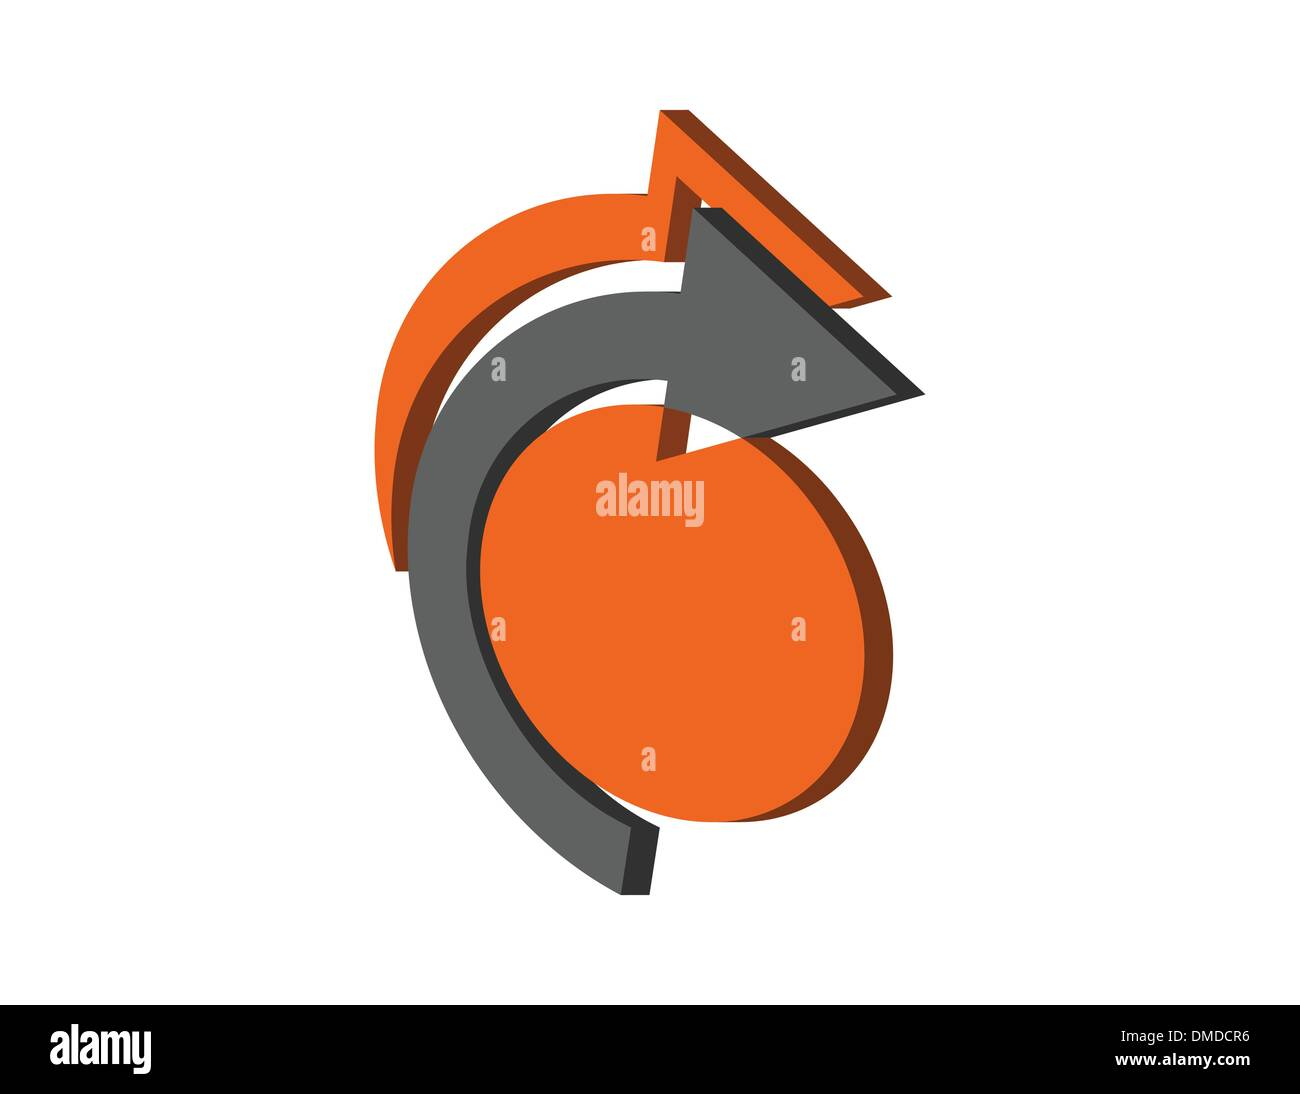 the vector abstract symbol - Stock Image